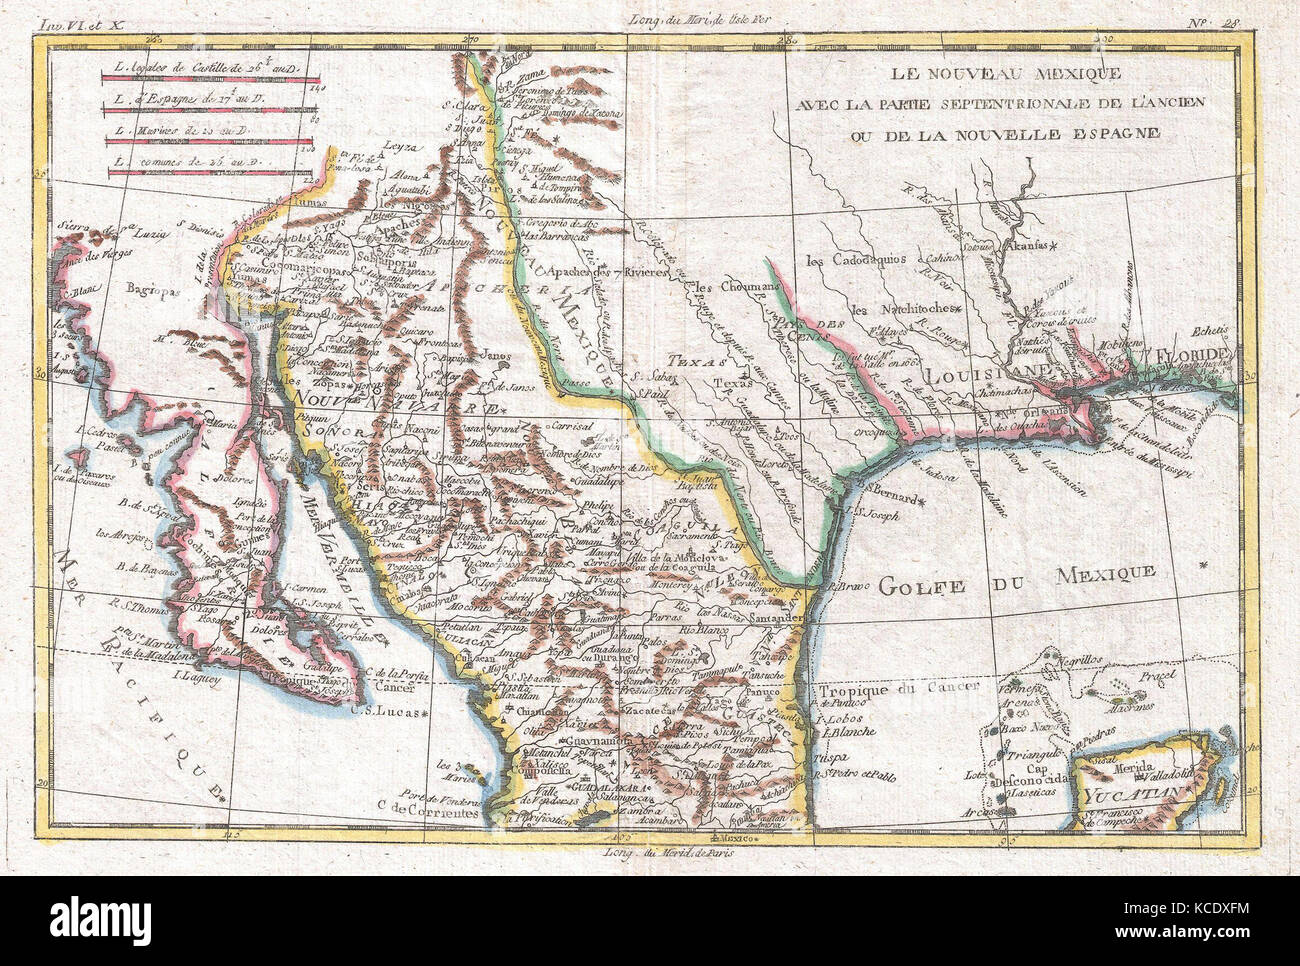 1780 raynal and bonne map of mexico and texas rigobert bonne 1727 1794